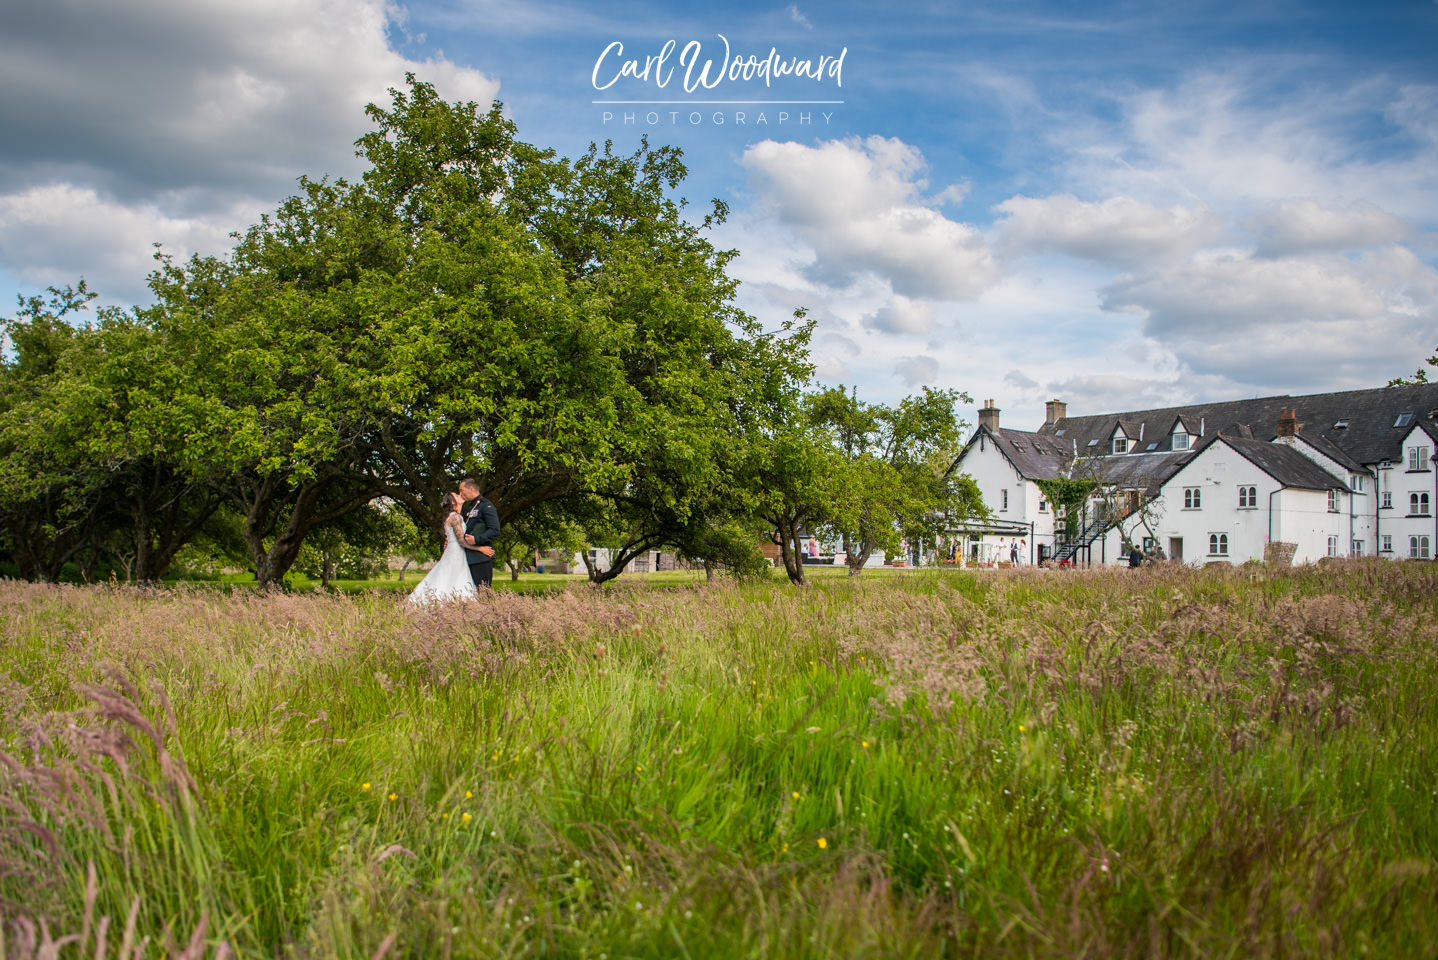 013-The-Old-Rectory-Hotel-Wedding-Photography-Cardiff-Wedding-Photography.jpg